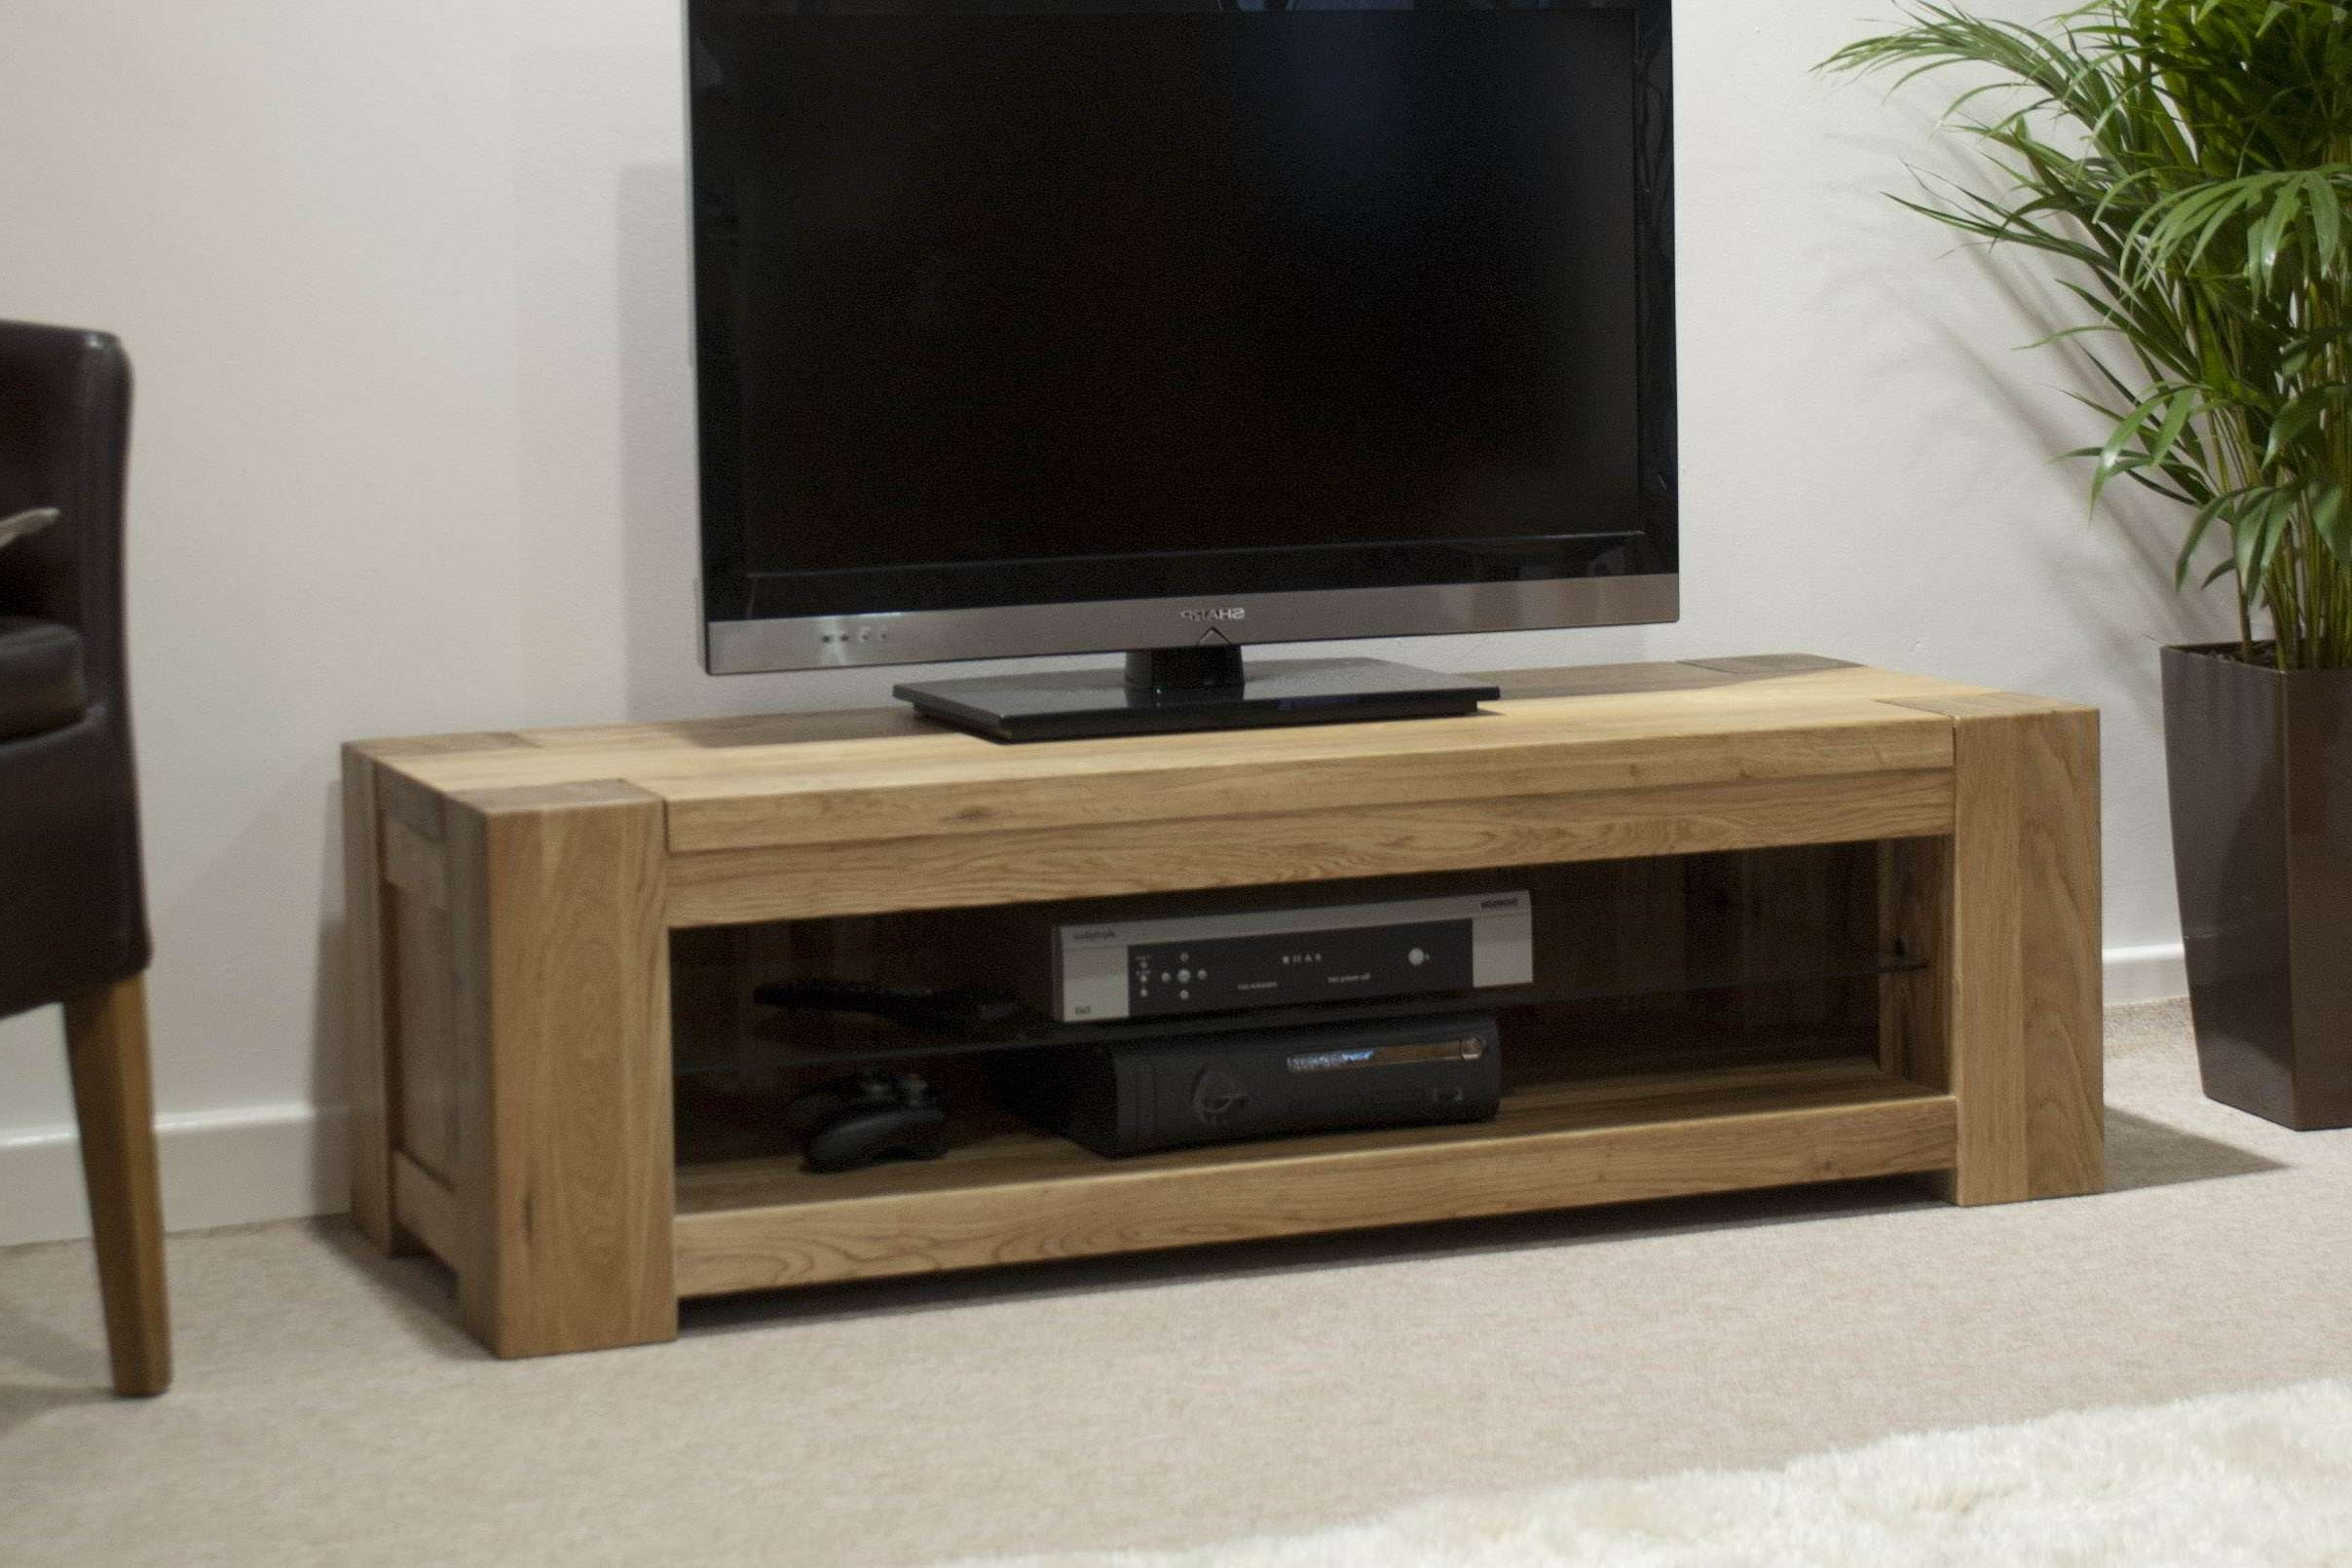 Padova Solid Oak Furniture Plasma Television Cabinet Stand Unit | Ebay For Modern Plasma Tv Stands (View 12 of 15)